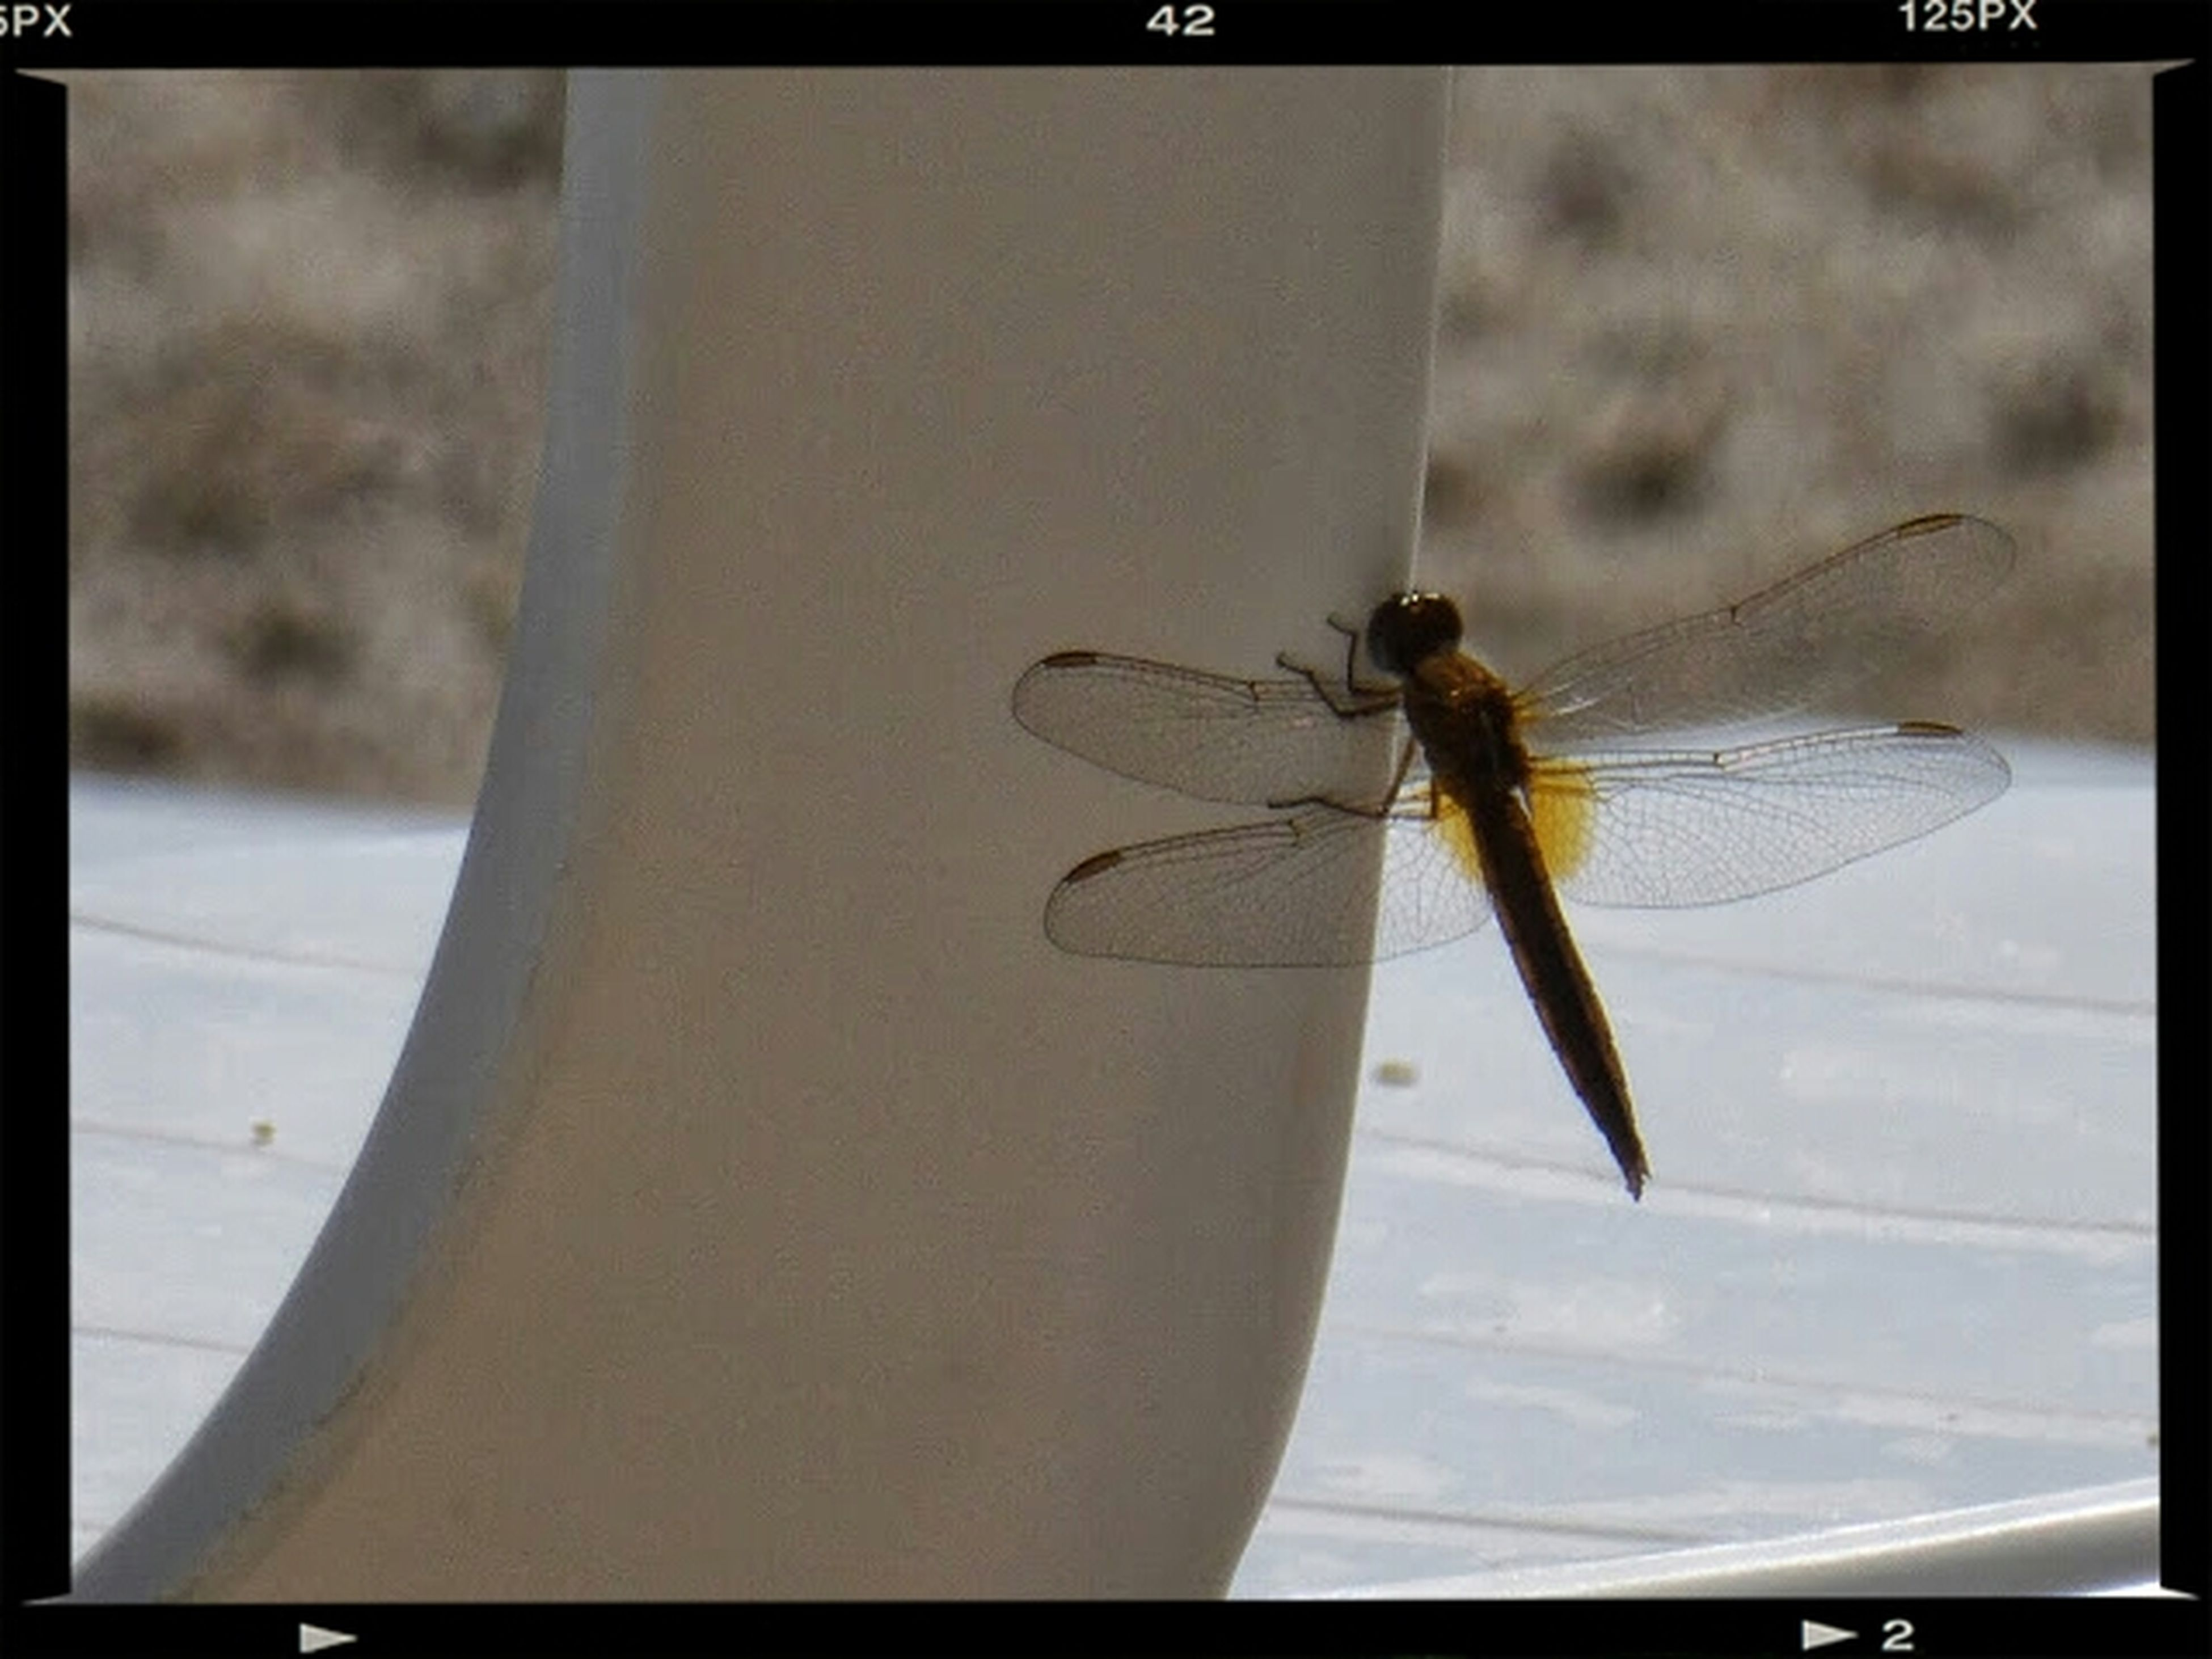 insect, animal themes, one animal, animals in the wild, wildlife, transfer print, auto post production filter, focus on foreground, close-up, animal wing, spider, flying, spread wings, day, full length, outdoors, dragonfly, no people, zoology, animal antenna